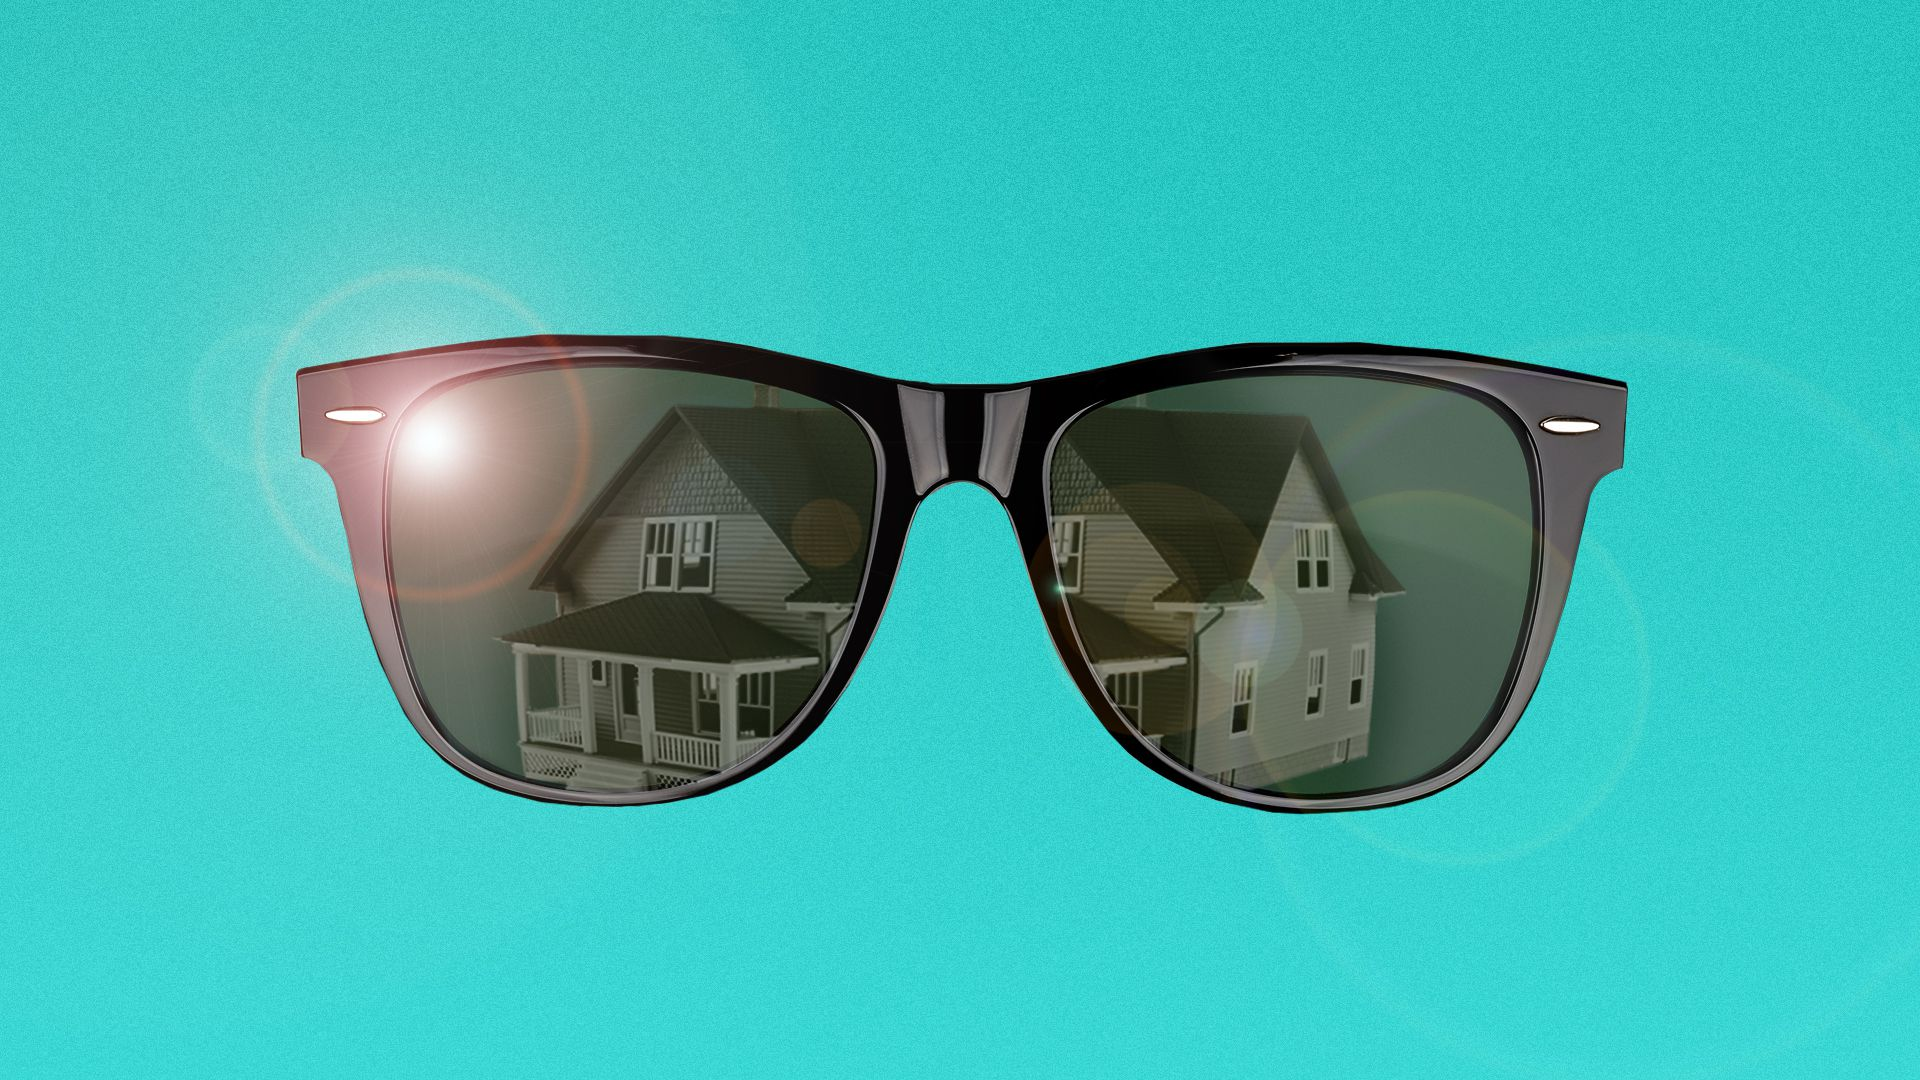 Illustration of a pair of sunglasses with a house reflecting in the lenses.